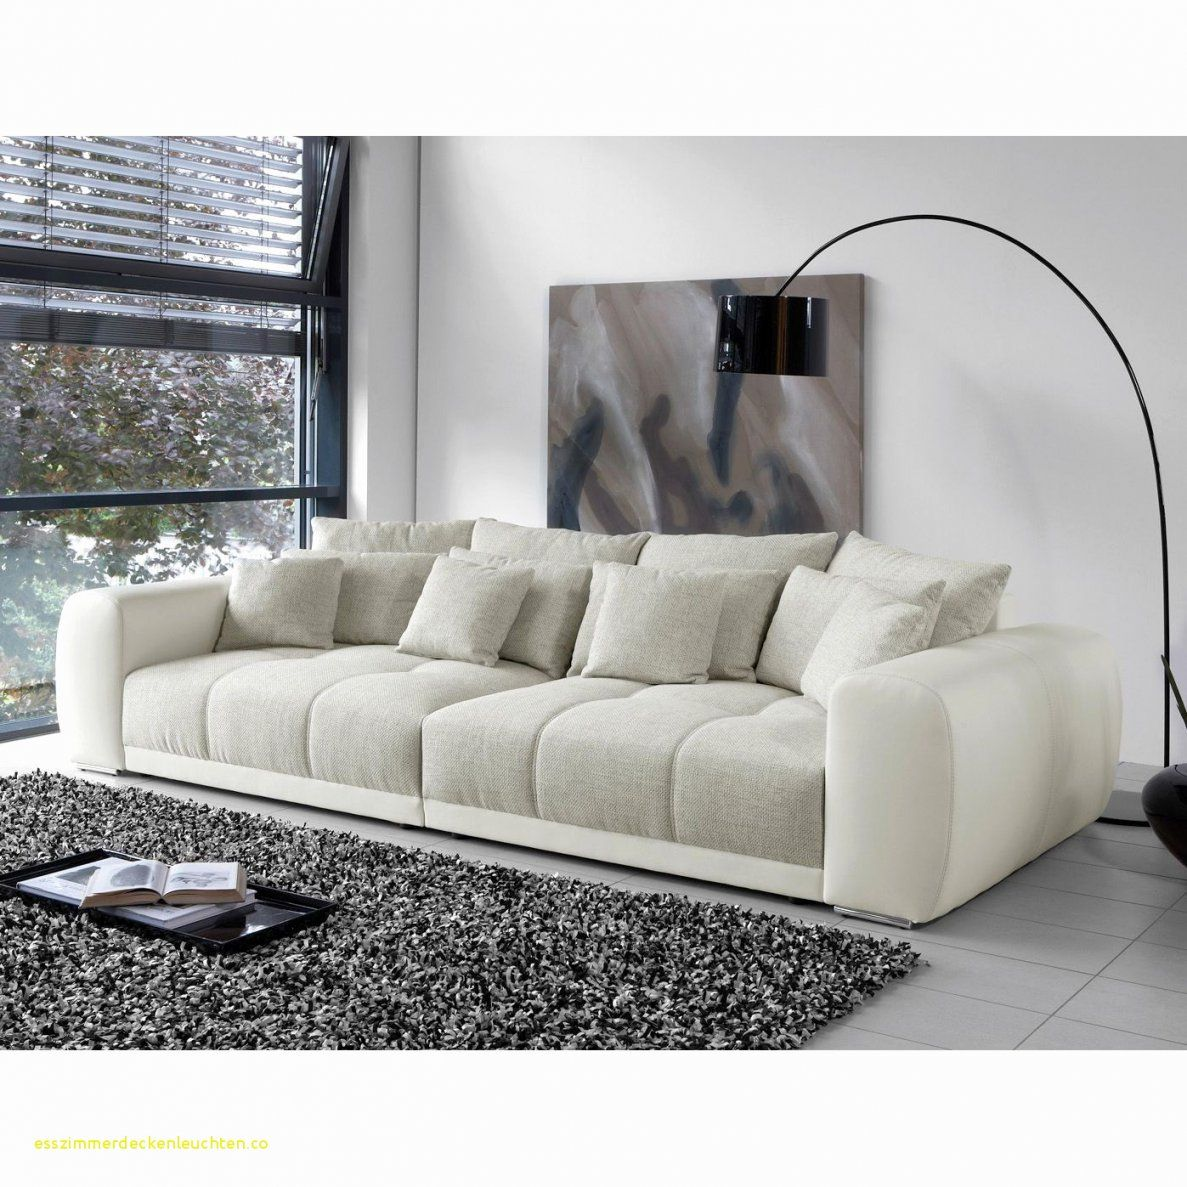 Design Big Sofa The Couch I Want To Purchase Is Inches But Soooo von Big Sofa Xxl Lutz Bild